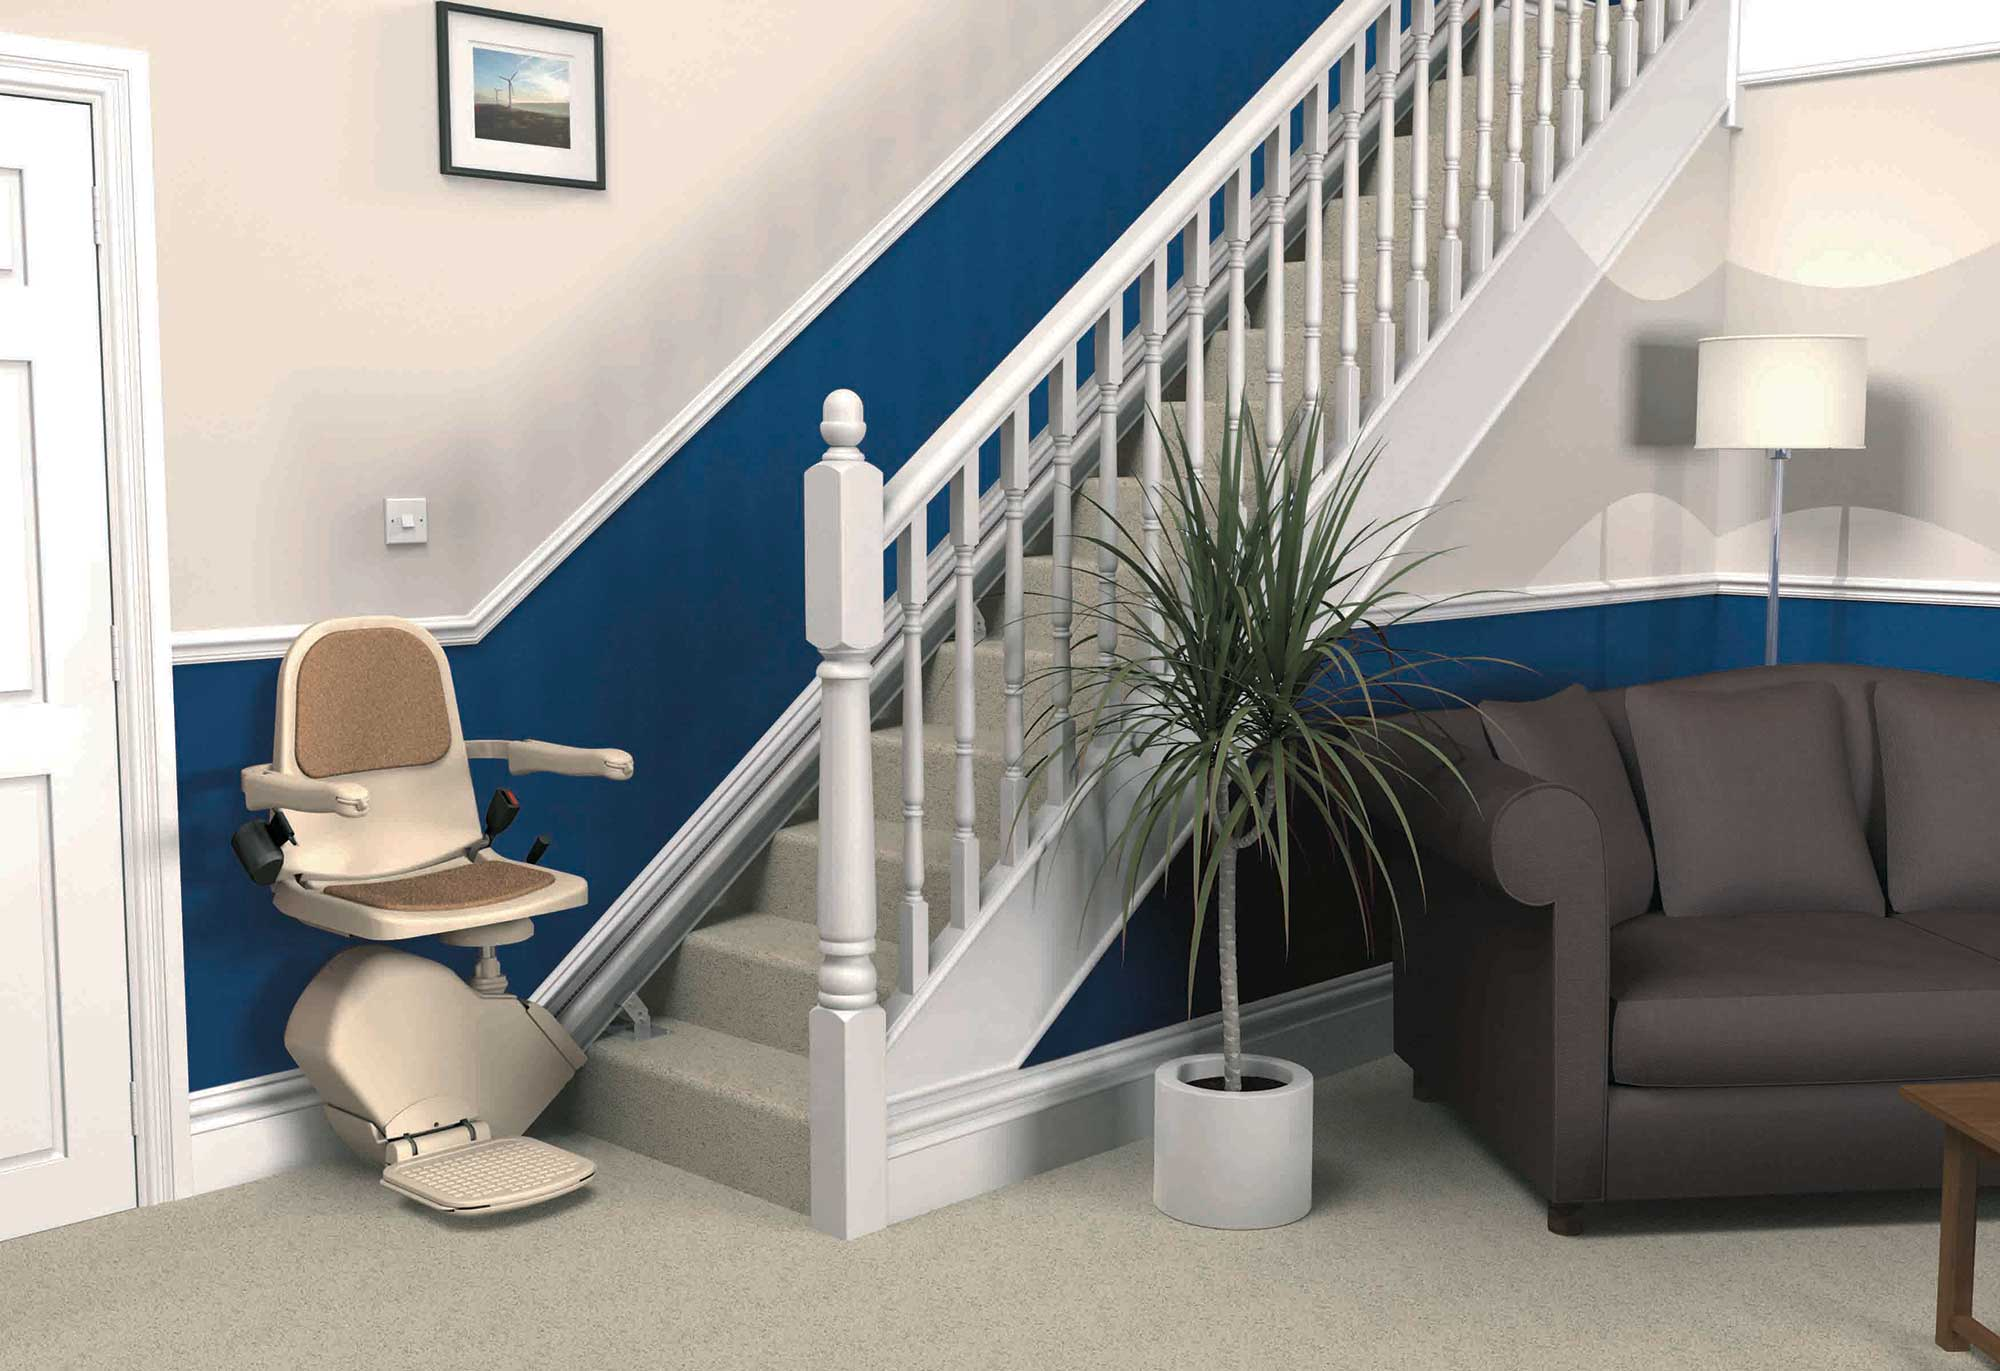 Why choose Manchester Stairlifts?